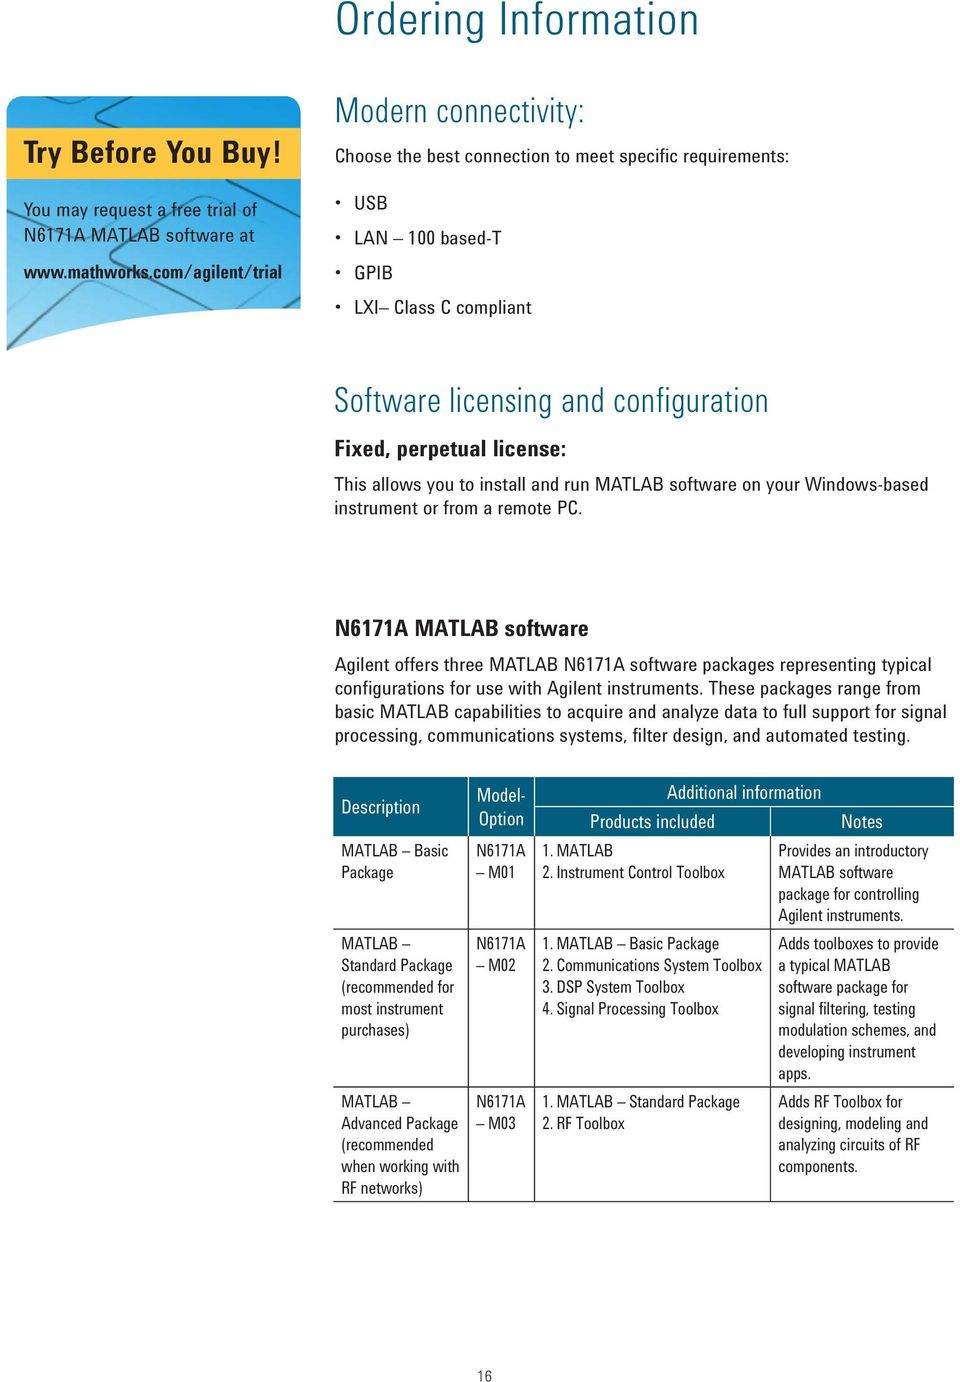 N6171A MATLAB Data Analysis Software for Agilent Instruments - PDF